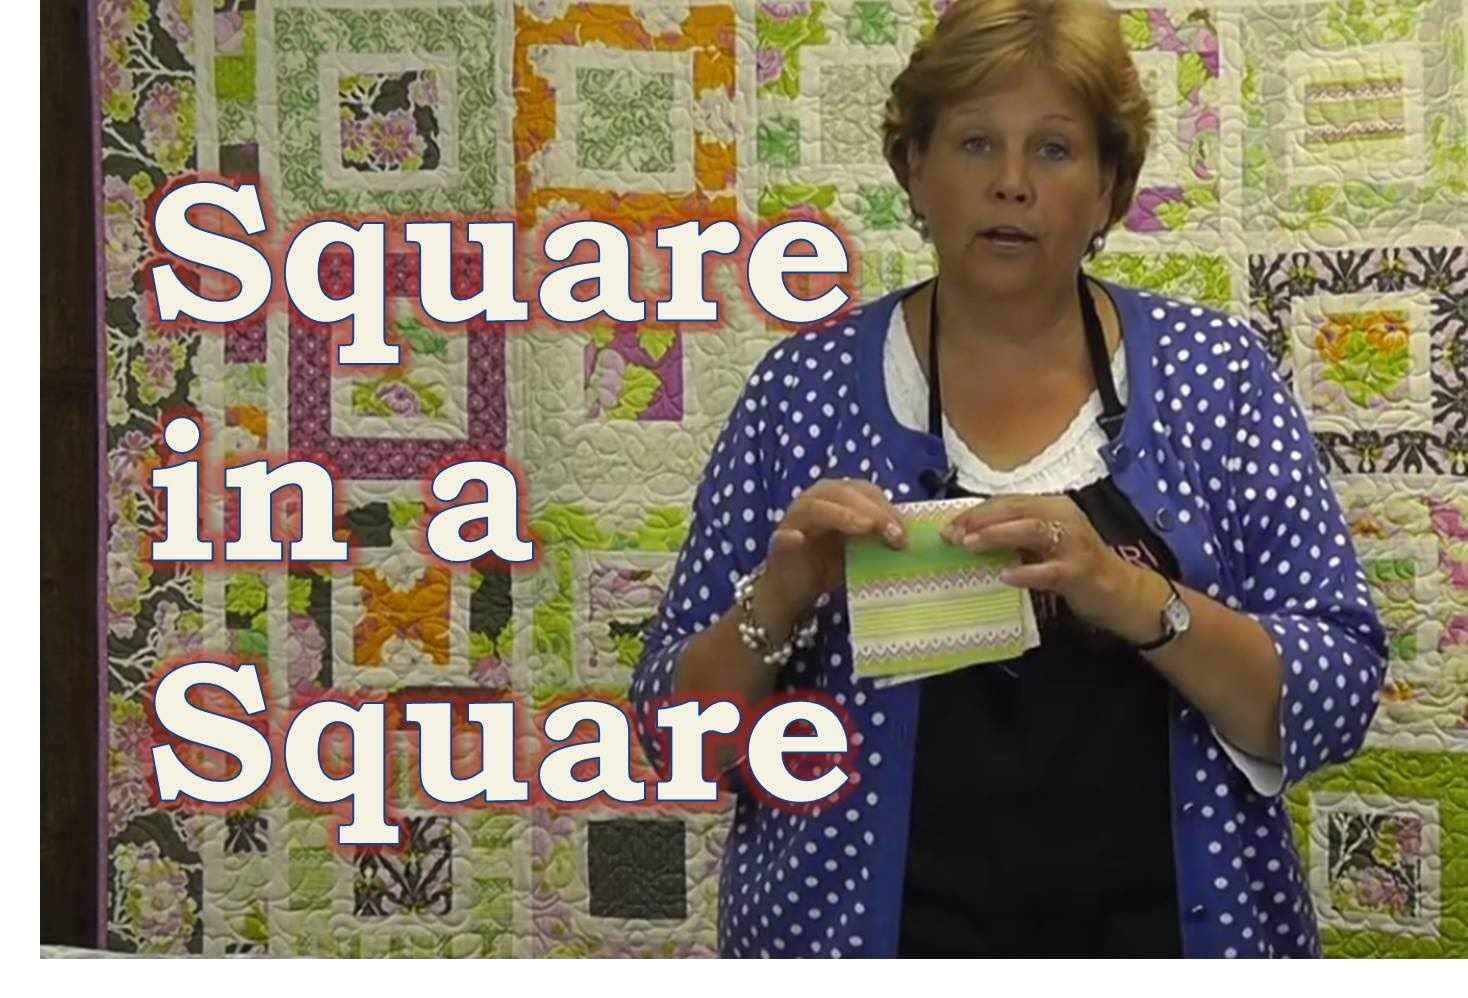 Pin By Missouri Star Quilt On Quilting Tutorials Missouri Star Quilt Company Tutorials Missouri Star Quilt Company Missouri Quilt Tutorials